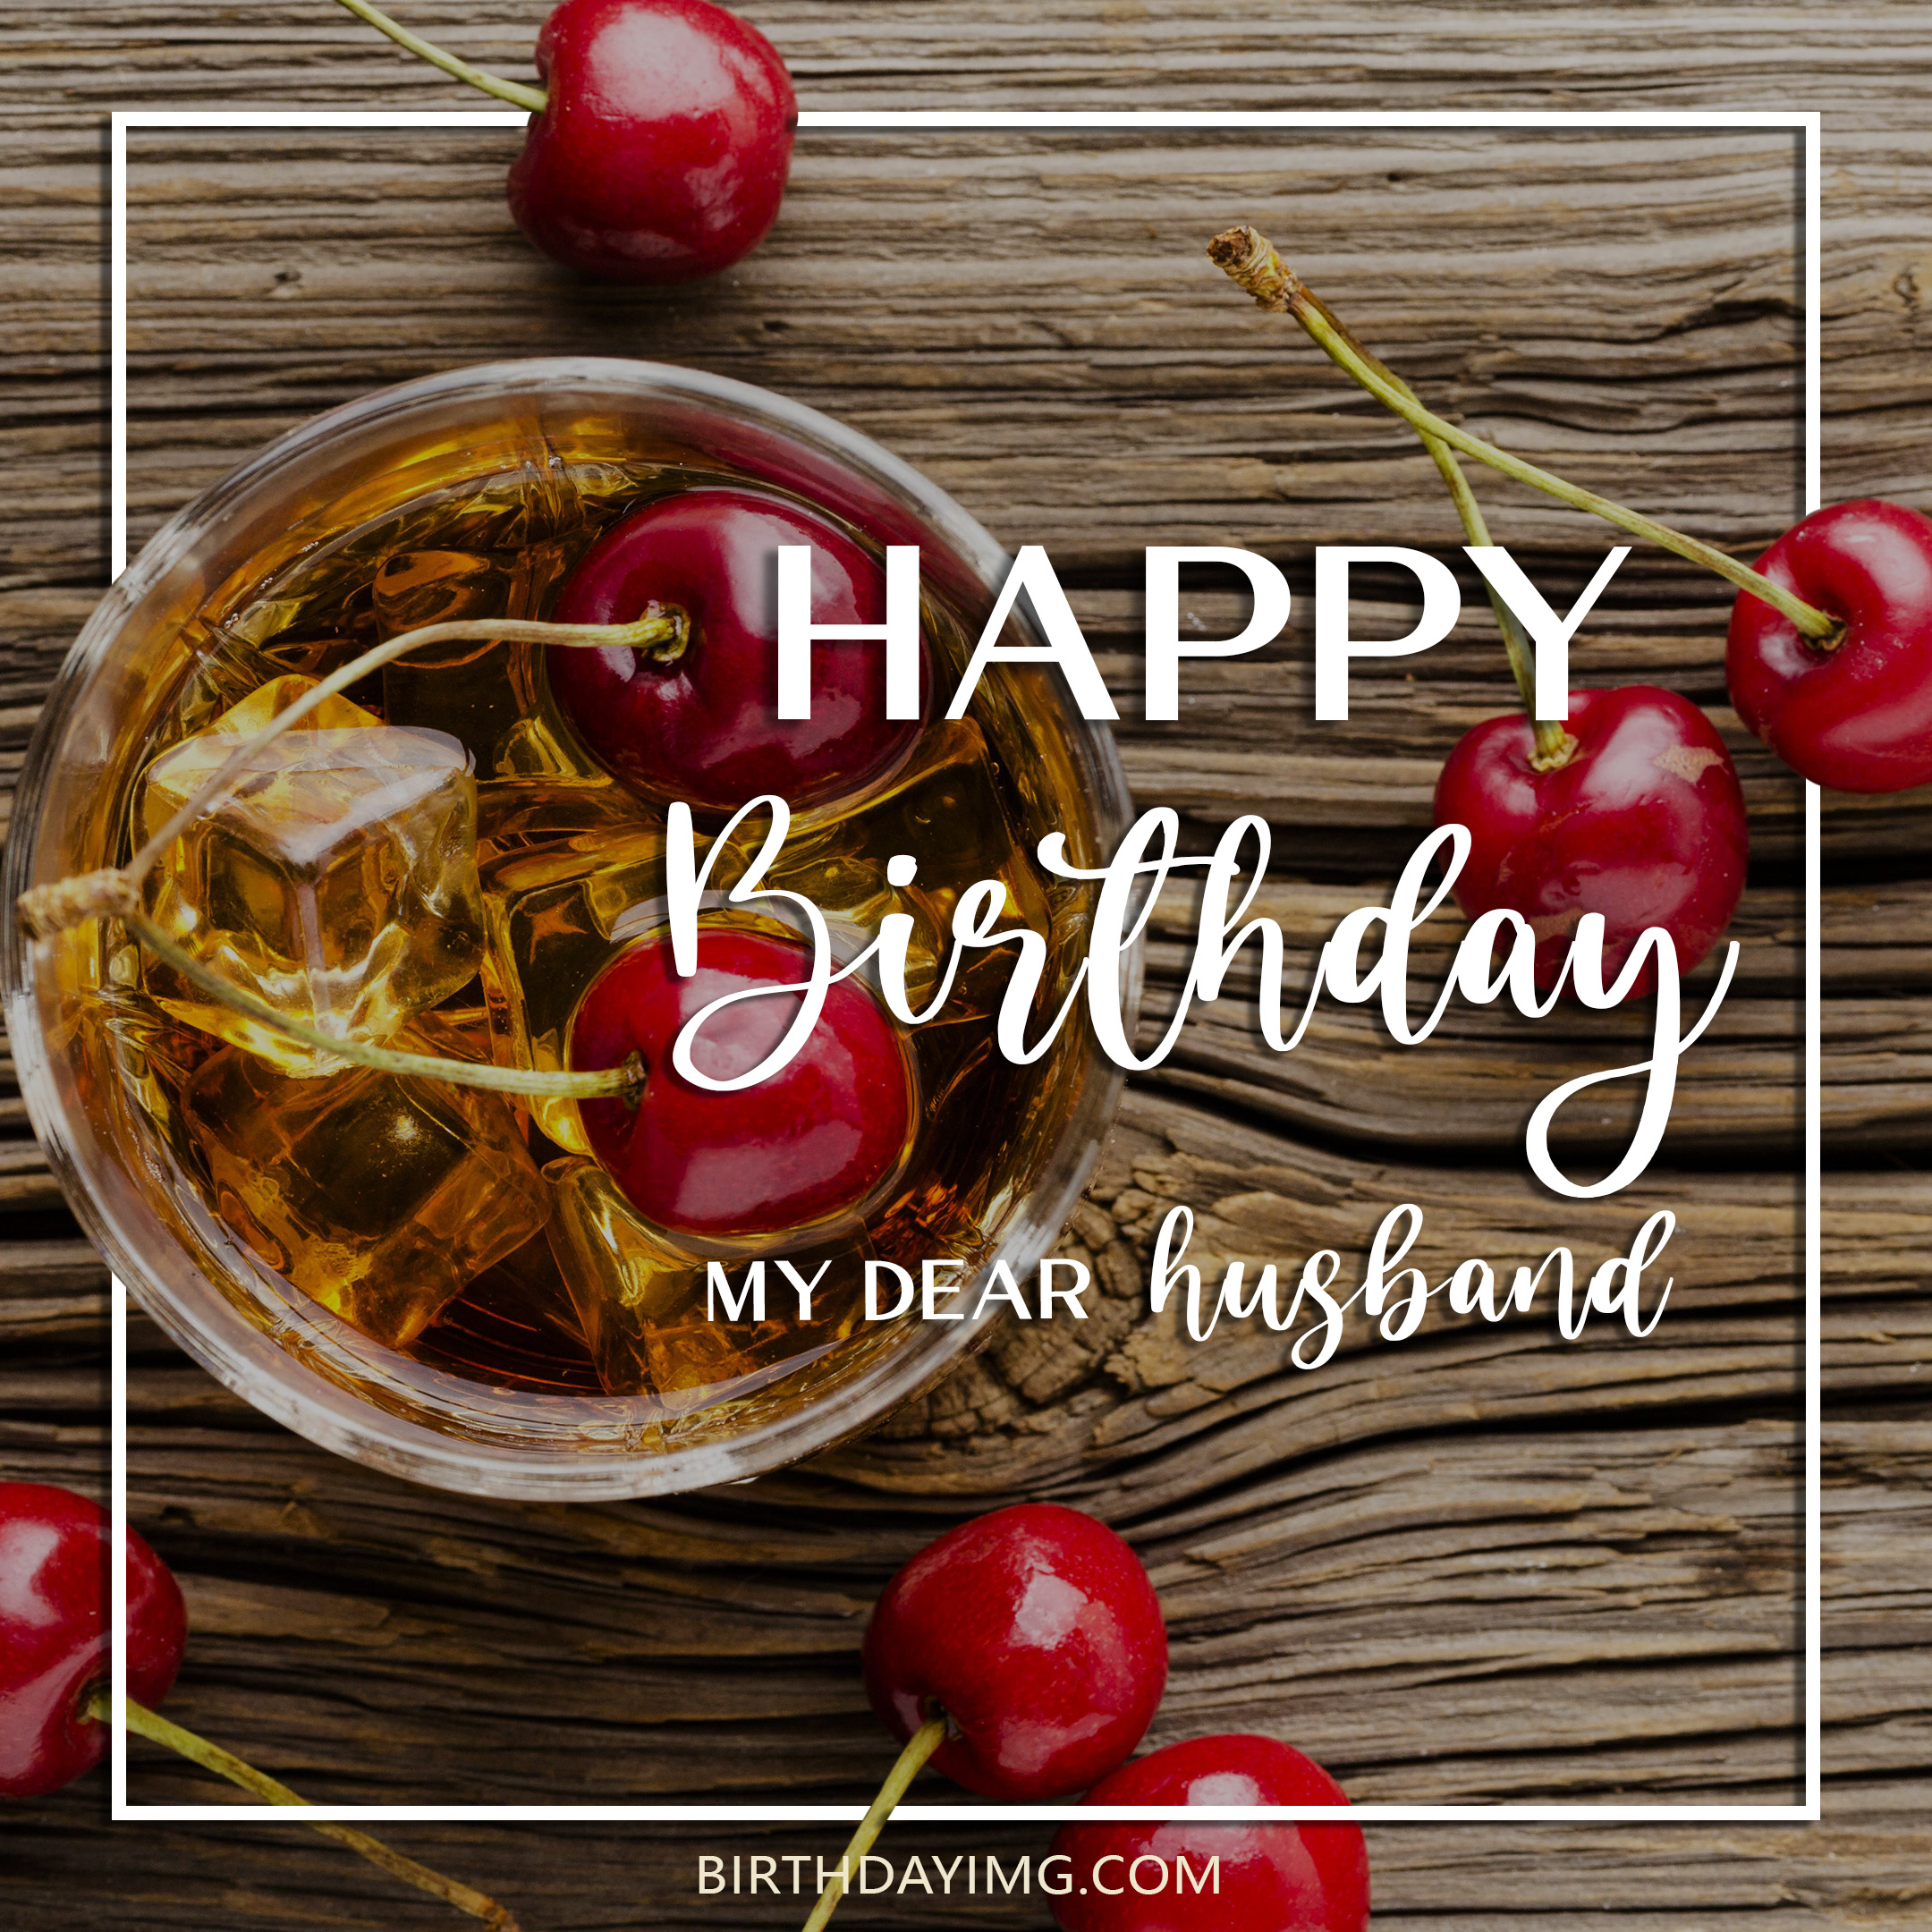 Free Happy Birthday Image For Husband With Glass Of Drink - birthdayimg.com